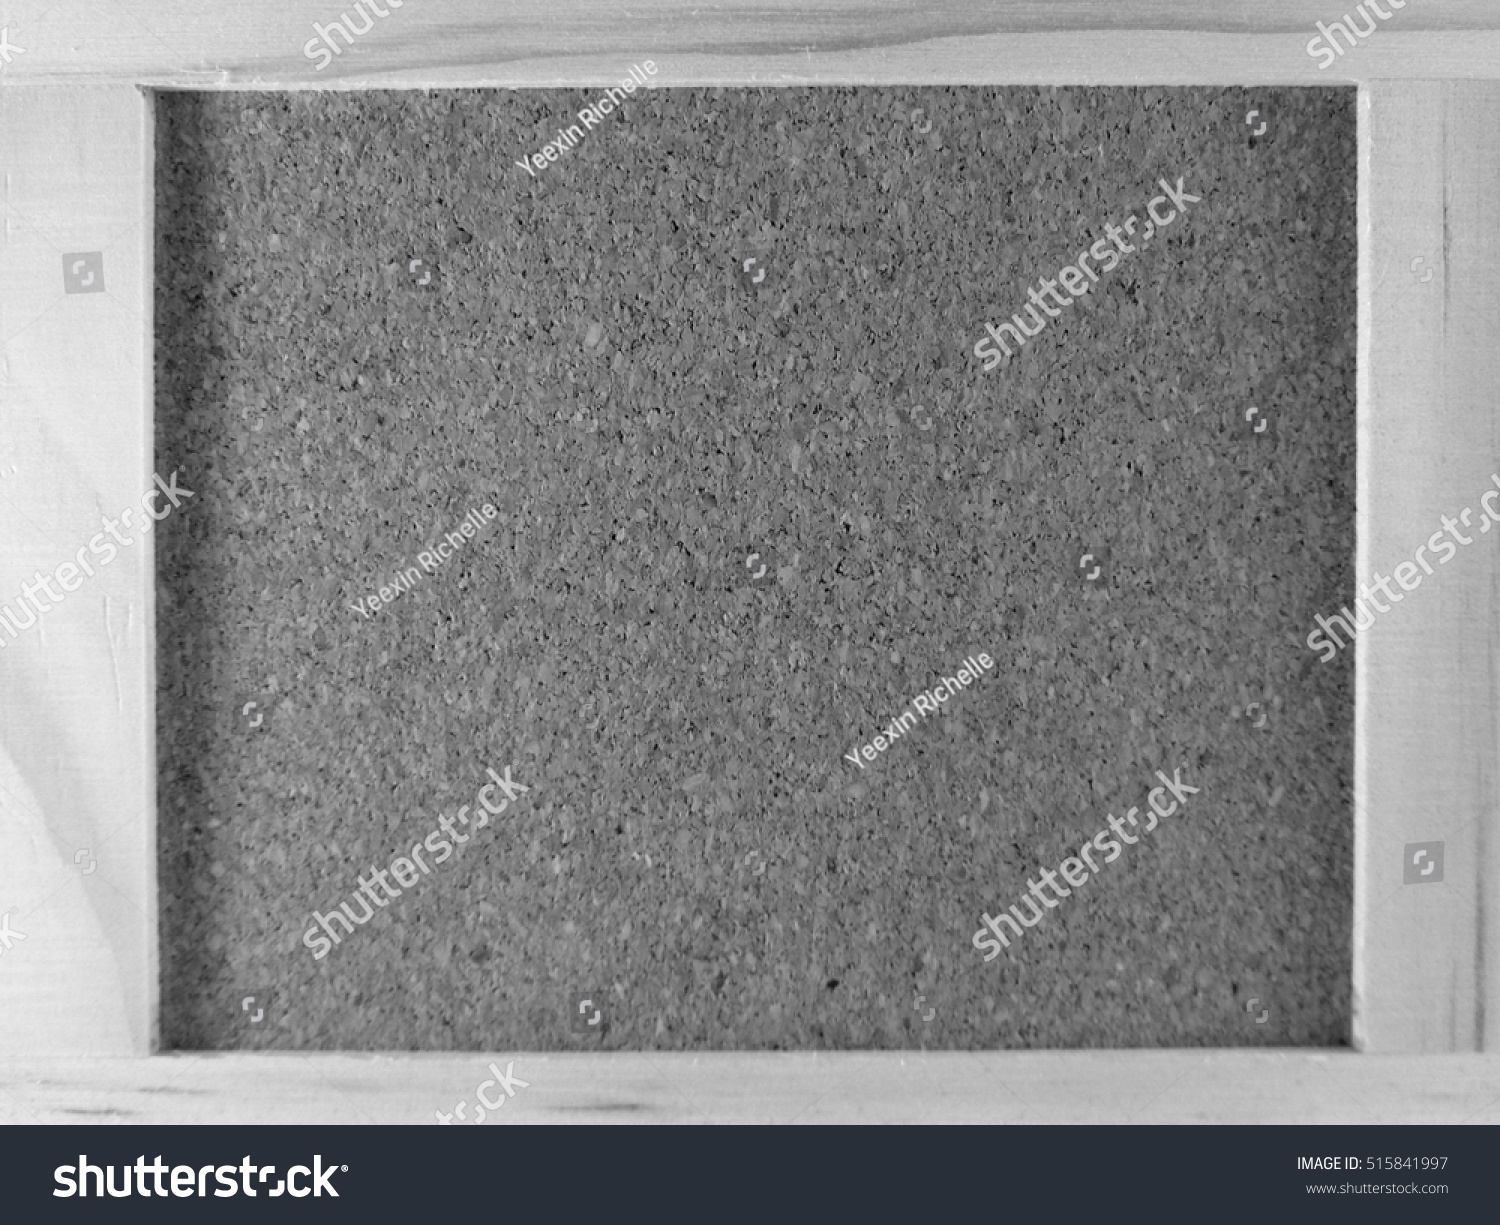 Black and white cork board cover background. #515841997